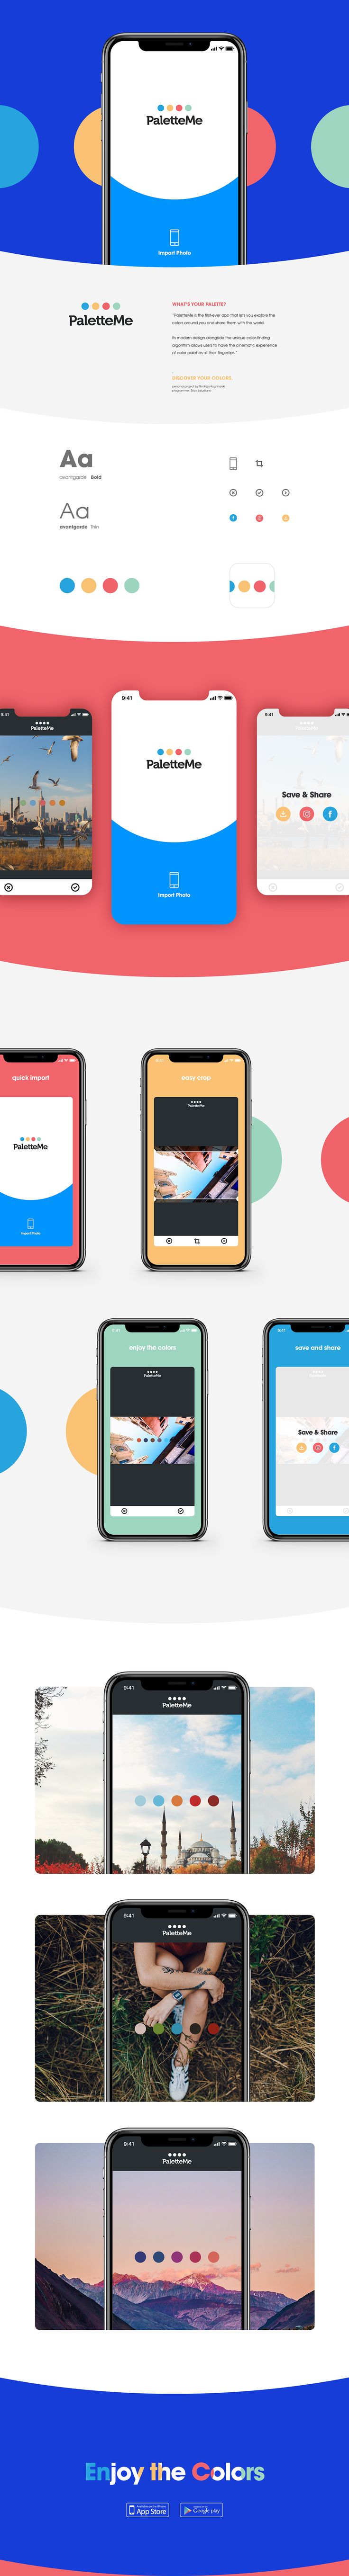 PaletteMe App on Behance